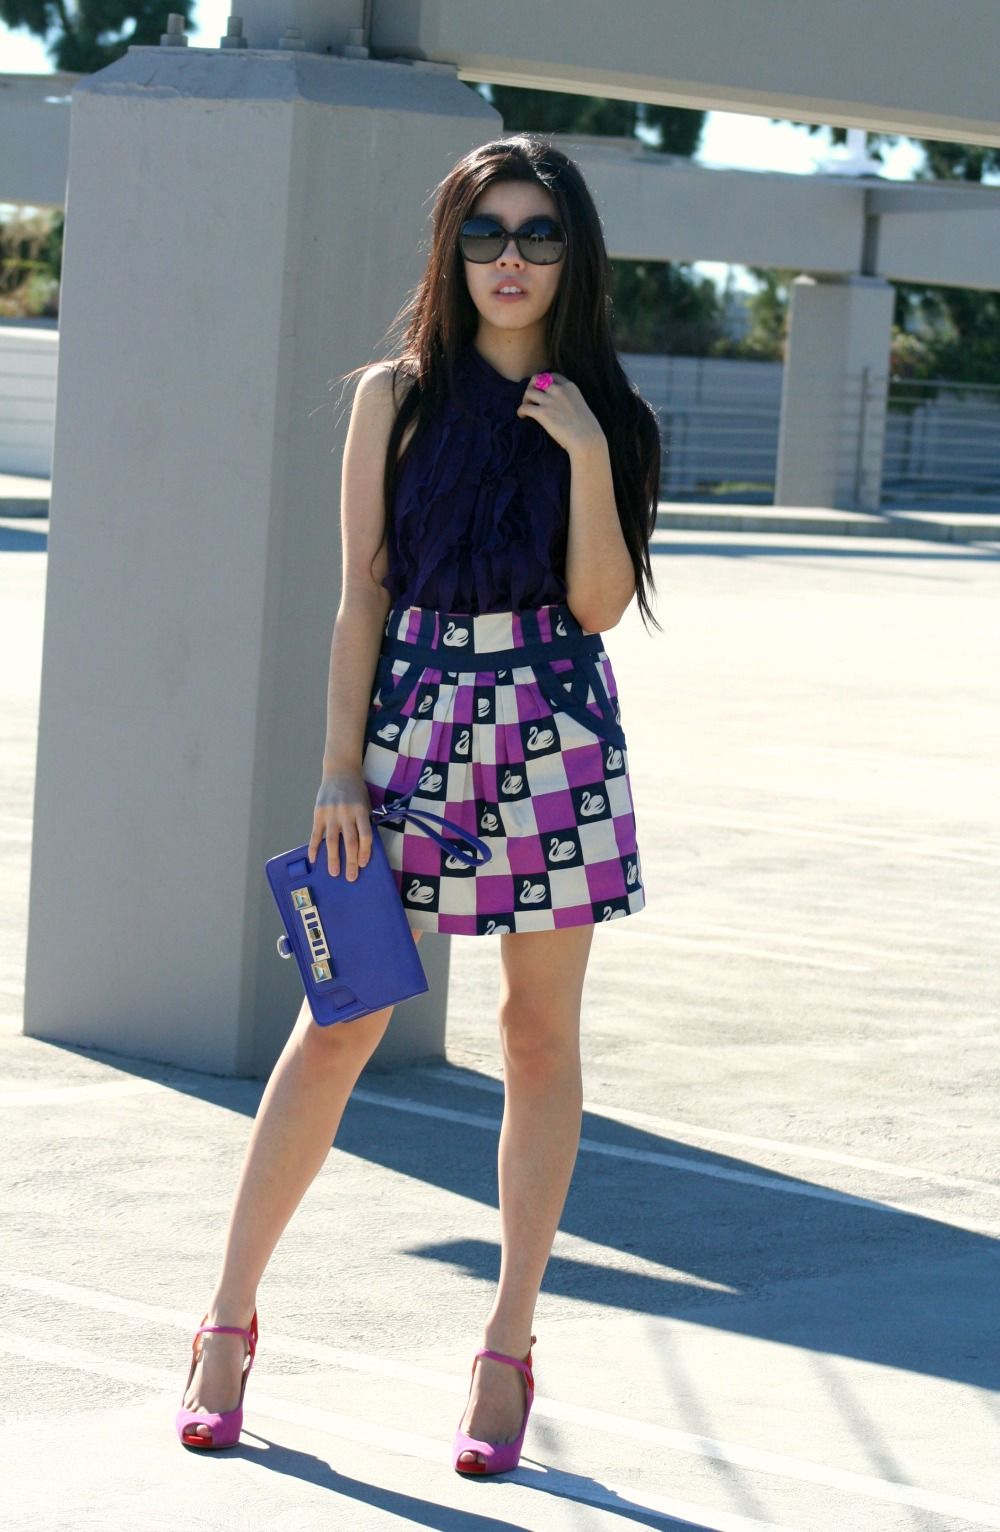 Purple Business casual Look with Ruffled Blouse and Swan Purple Mini Skirt_Adrienne Nguyen_Invictus